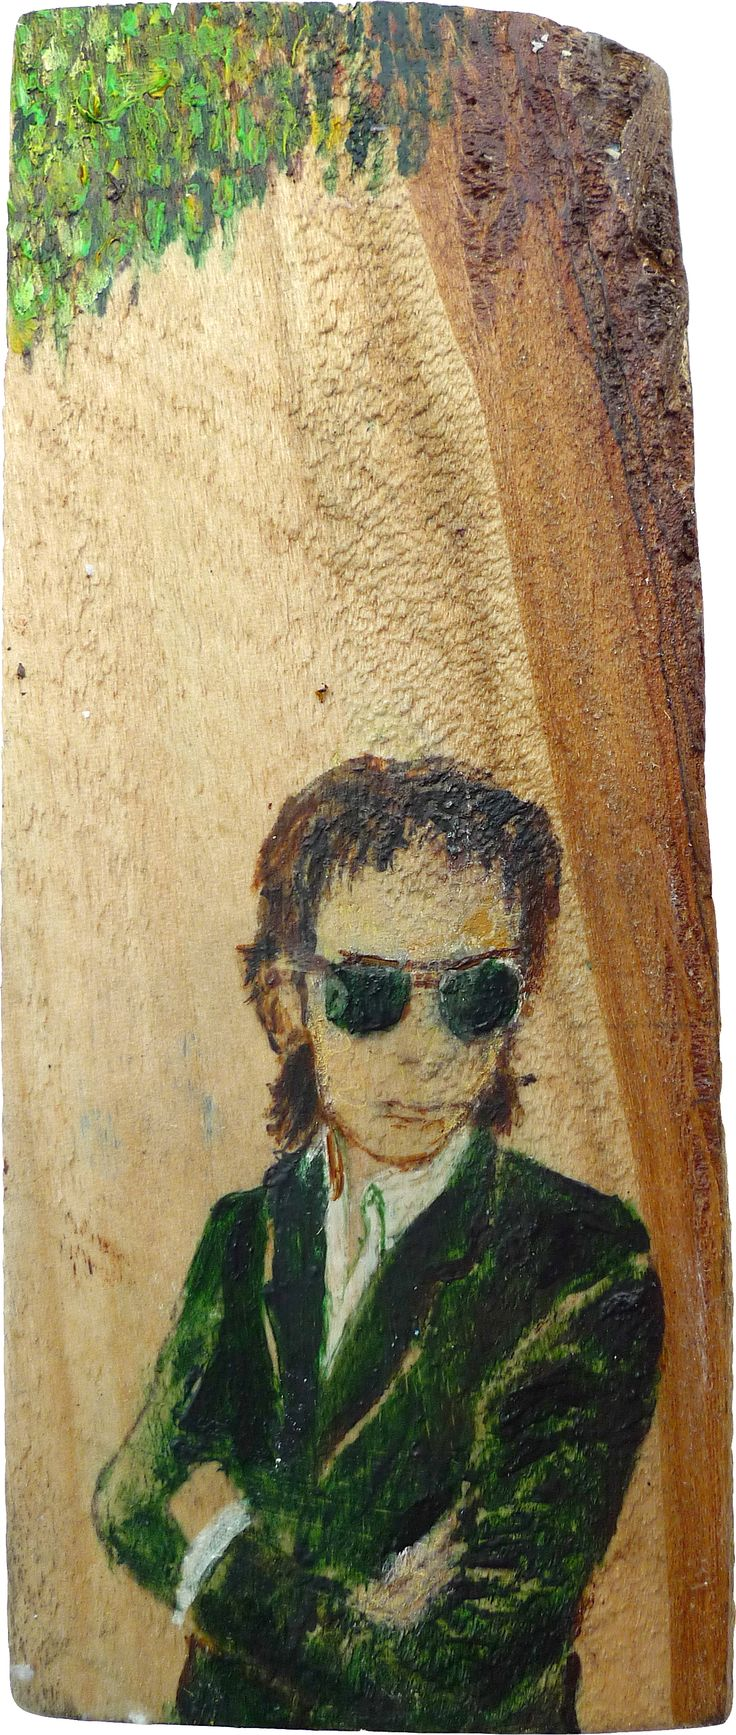 Nick (14x5cm acrylics and oil on wood)